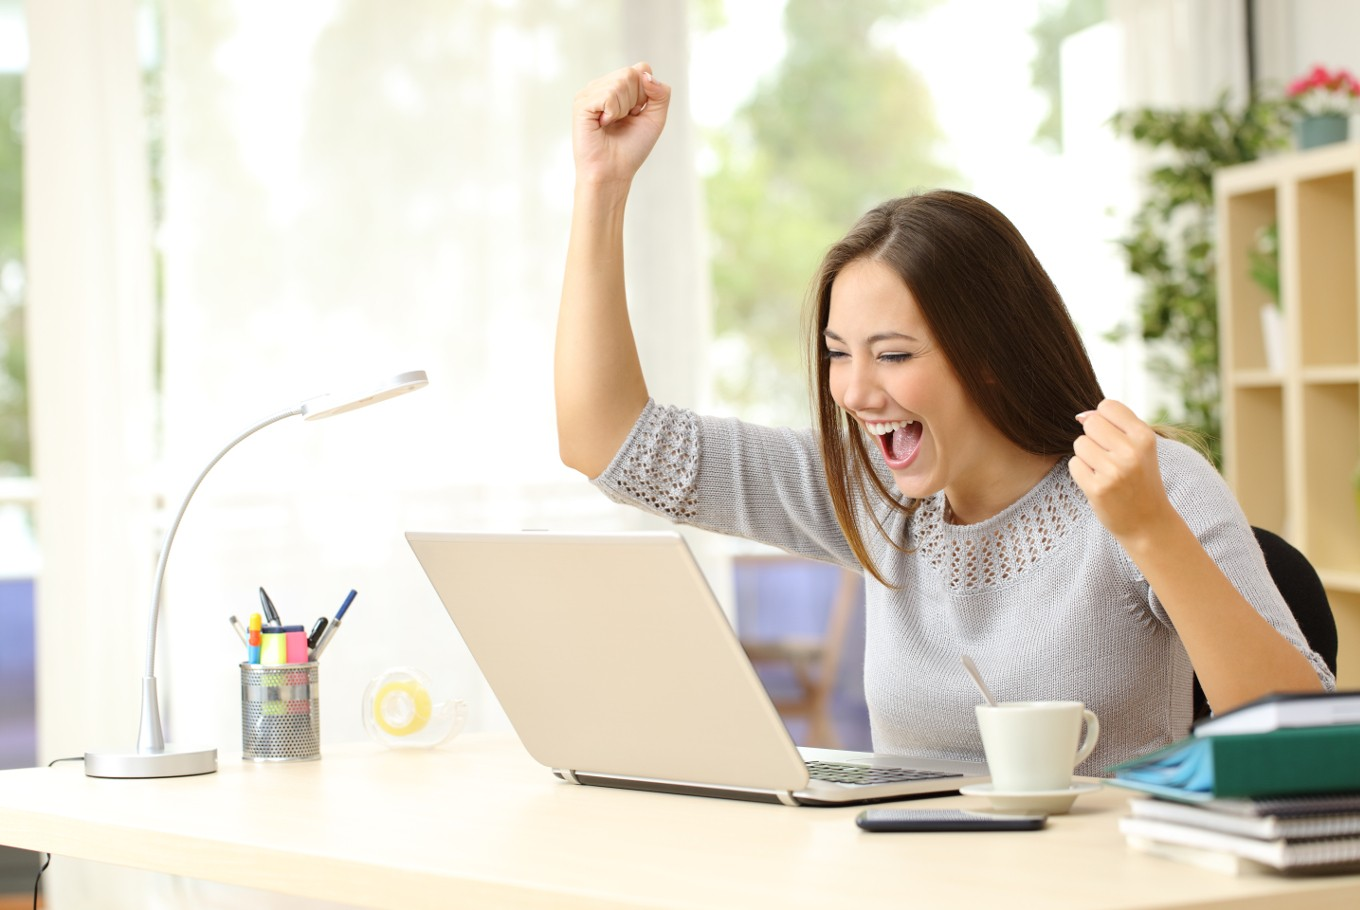 Conducted in 2017, the survey shows three meanings of success for Indonesians: Happiness, being healthy and maintaining a work-life balance. (Shutterstock/File)